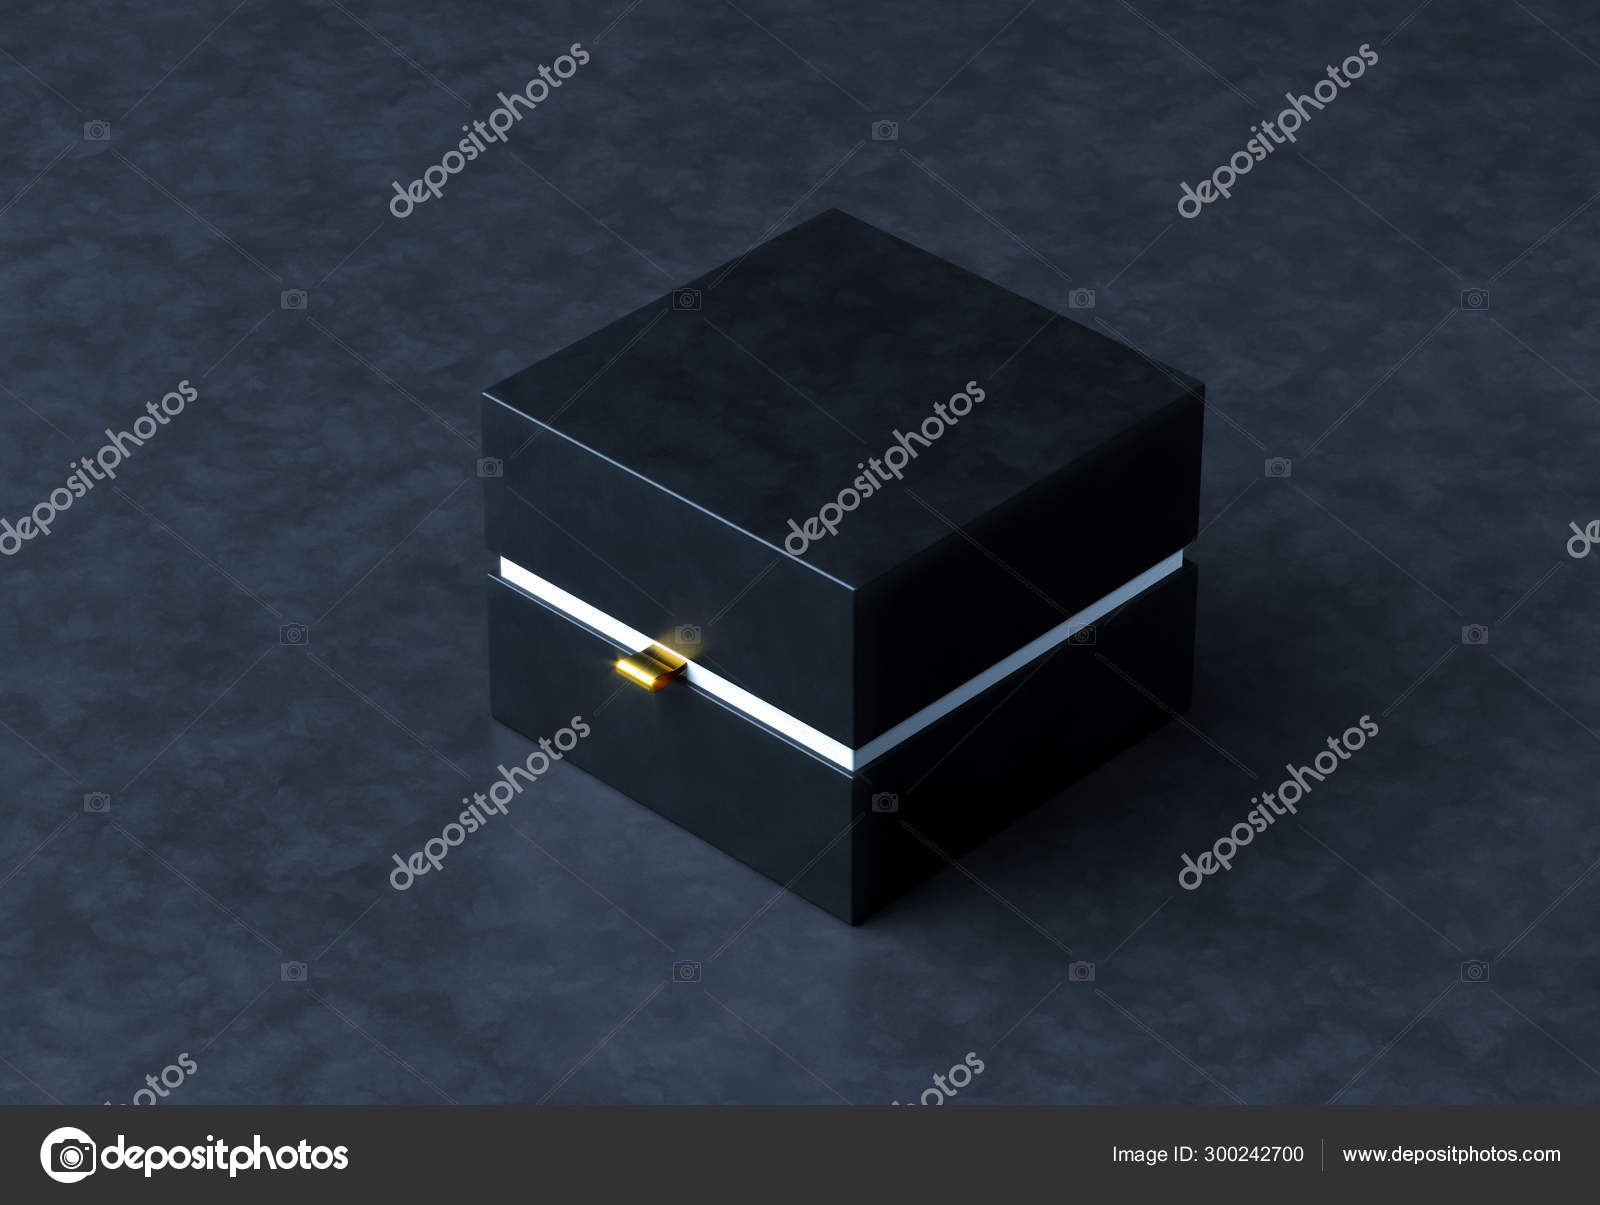 Black Gift Box Mockup On Black Background 3d Rendering Luxury Packaging Box For Premium Products Stock Photo C Volmon Tut By 300242700